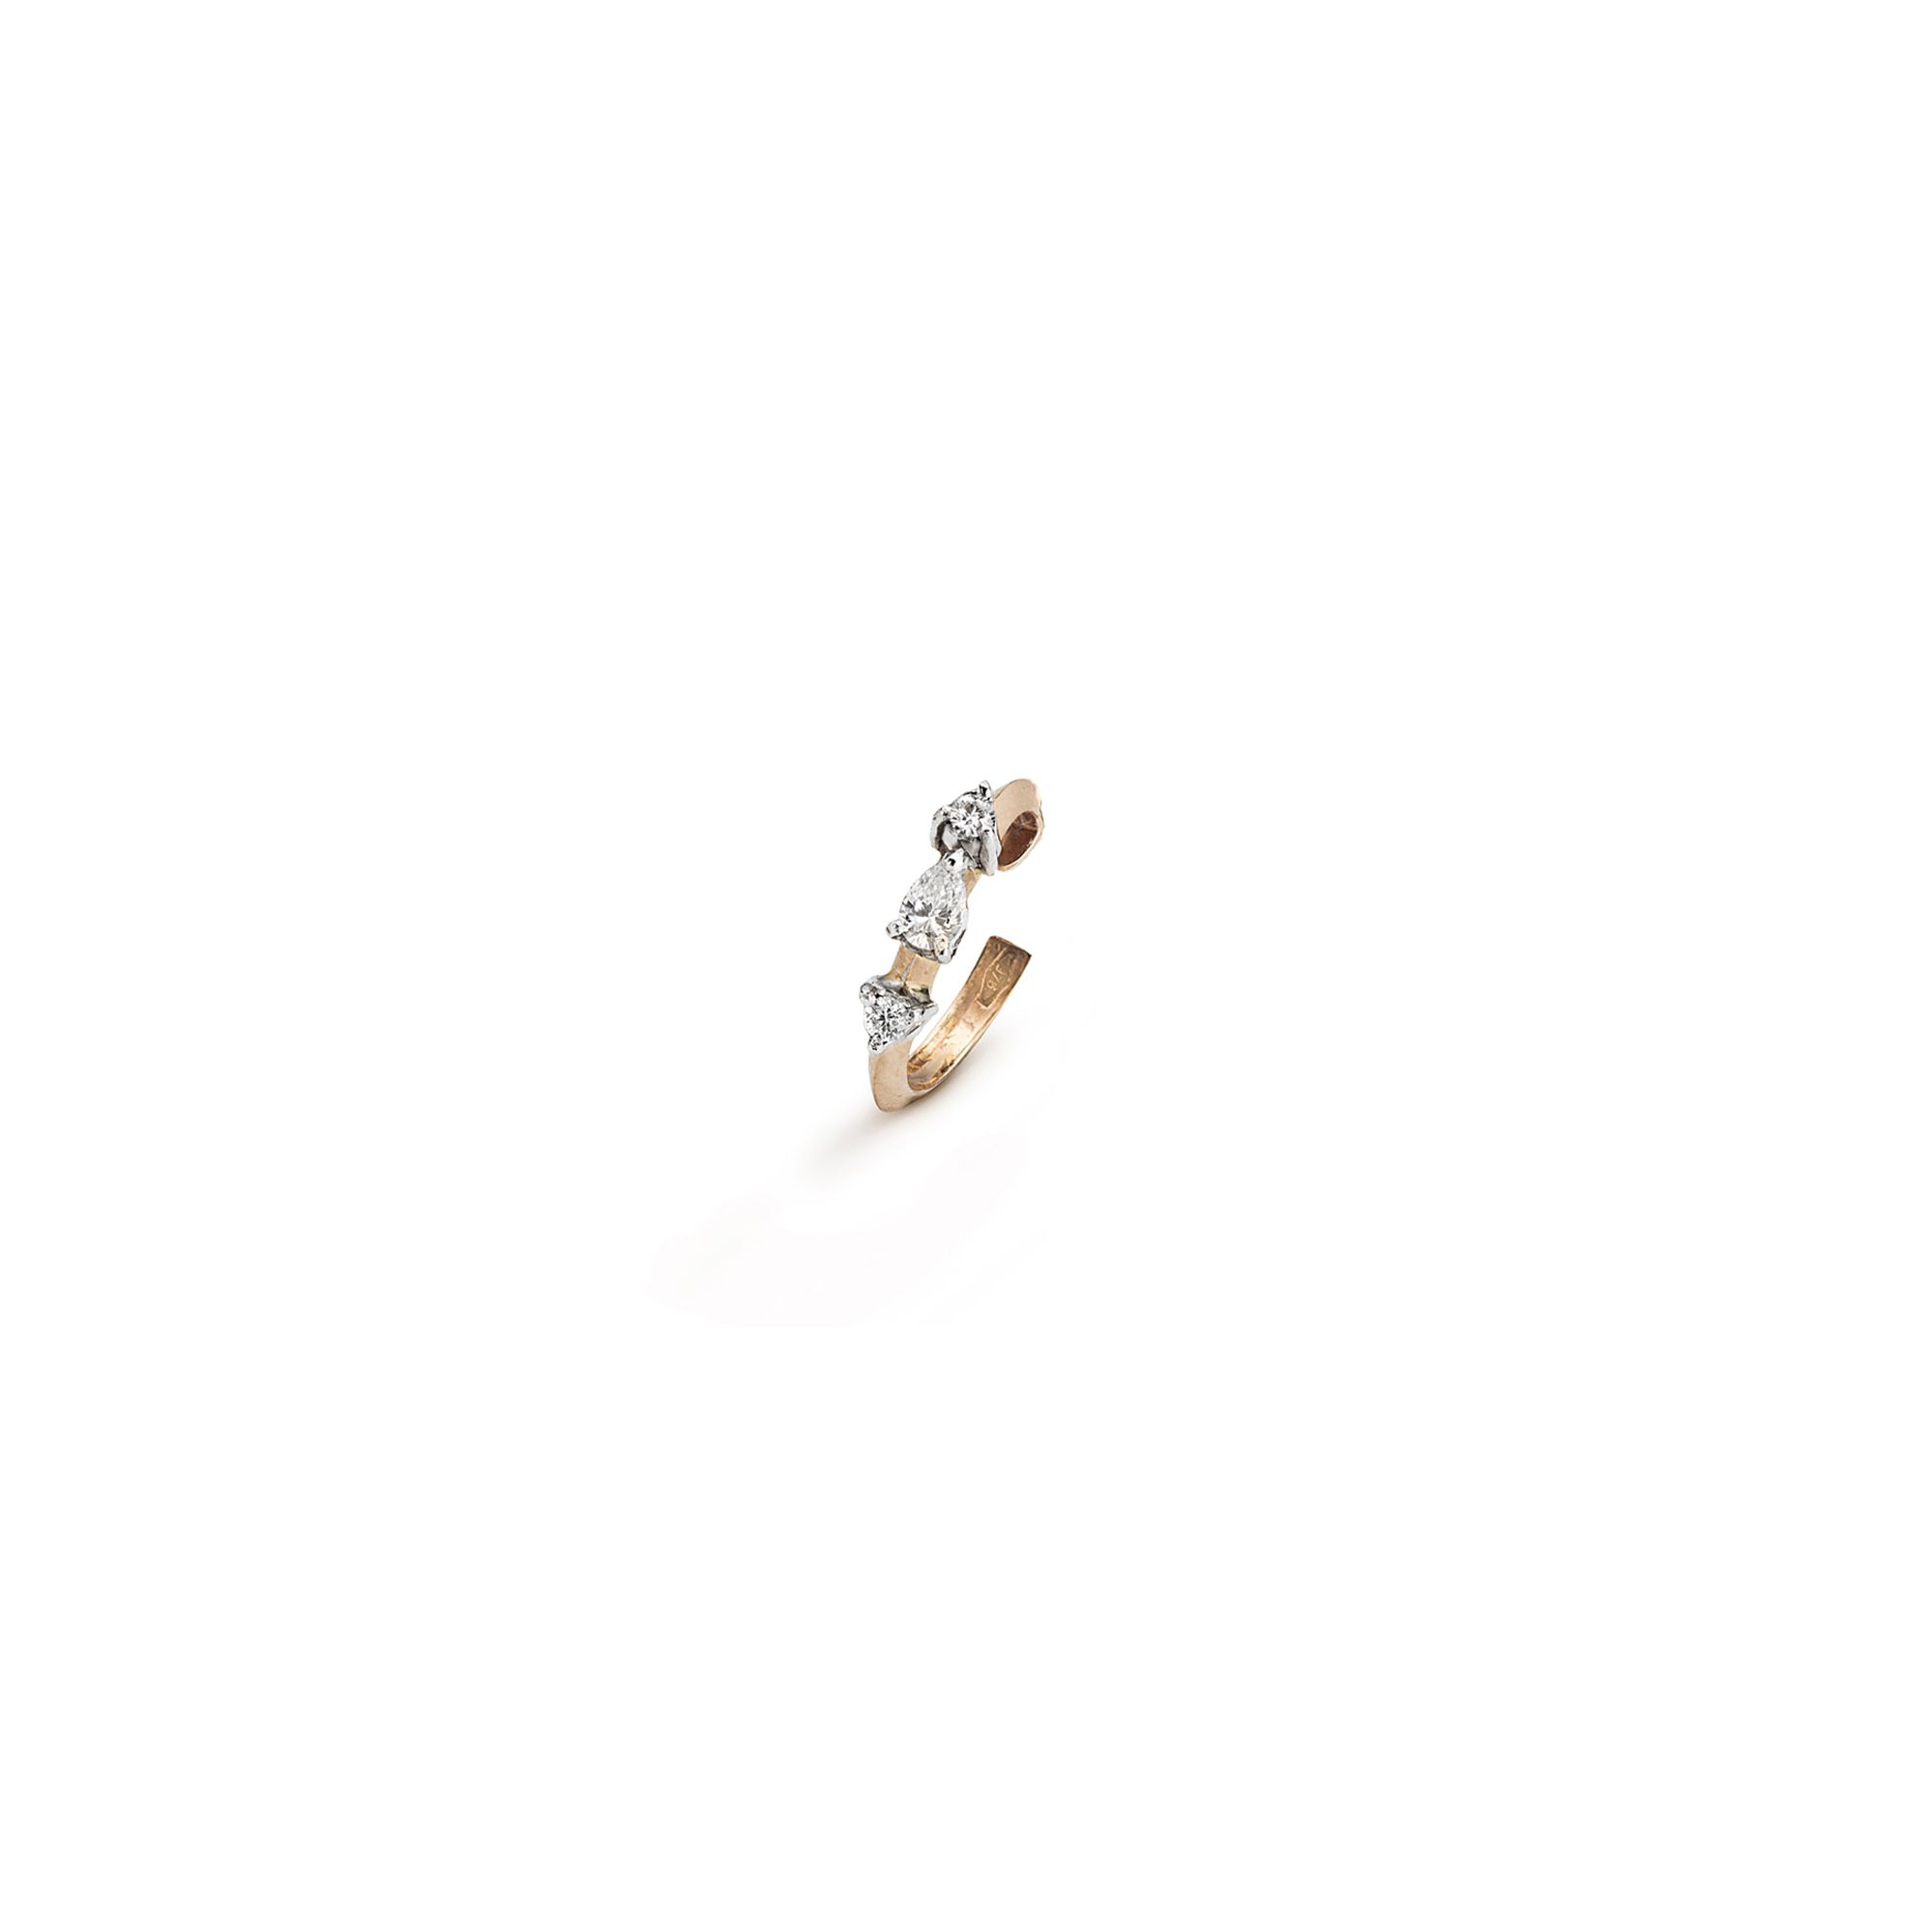 'Balance' ear cuff with drop and round diamonds Rose gold cuff earring with diamonds